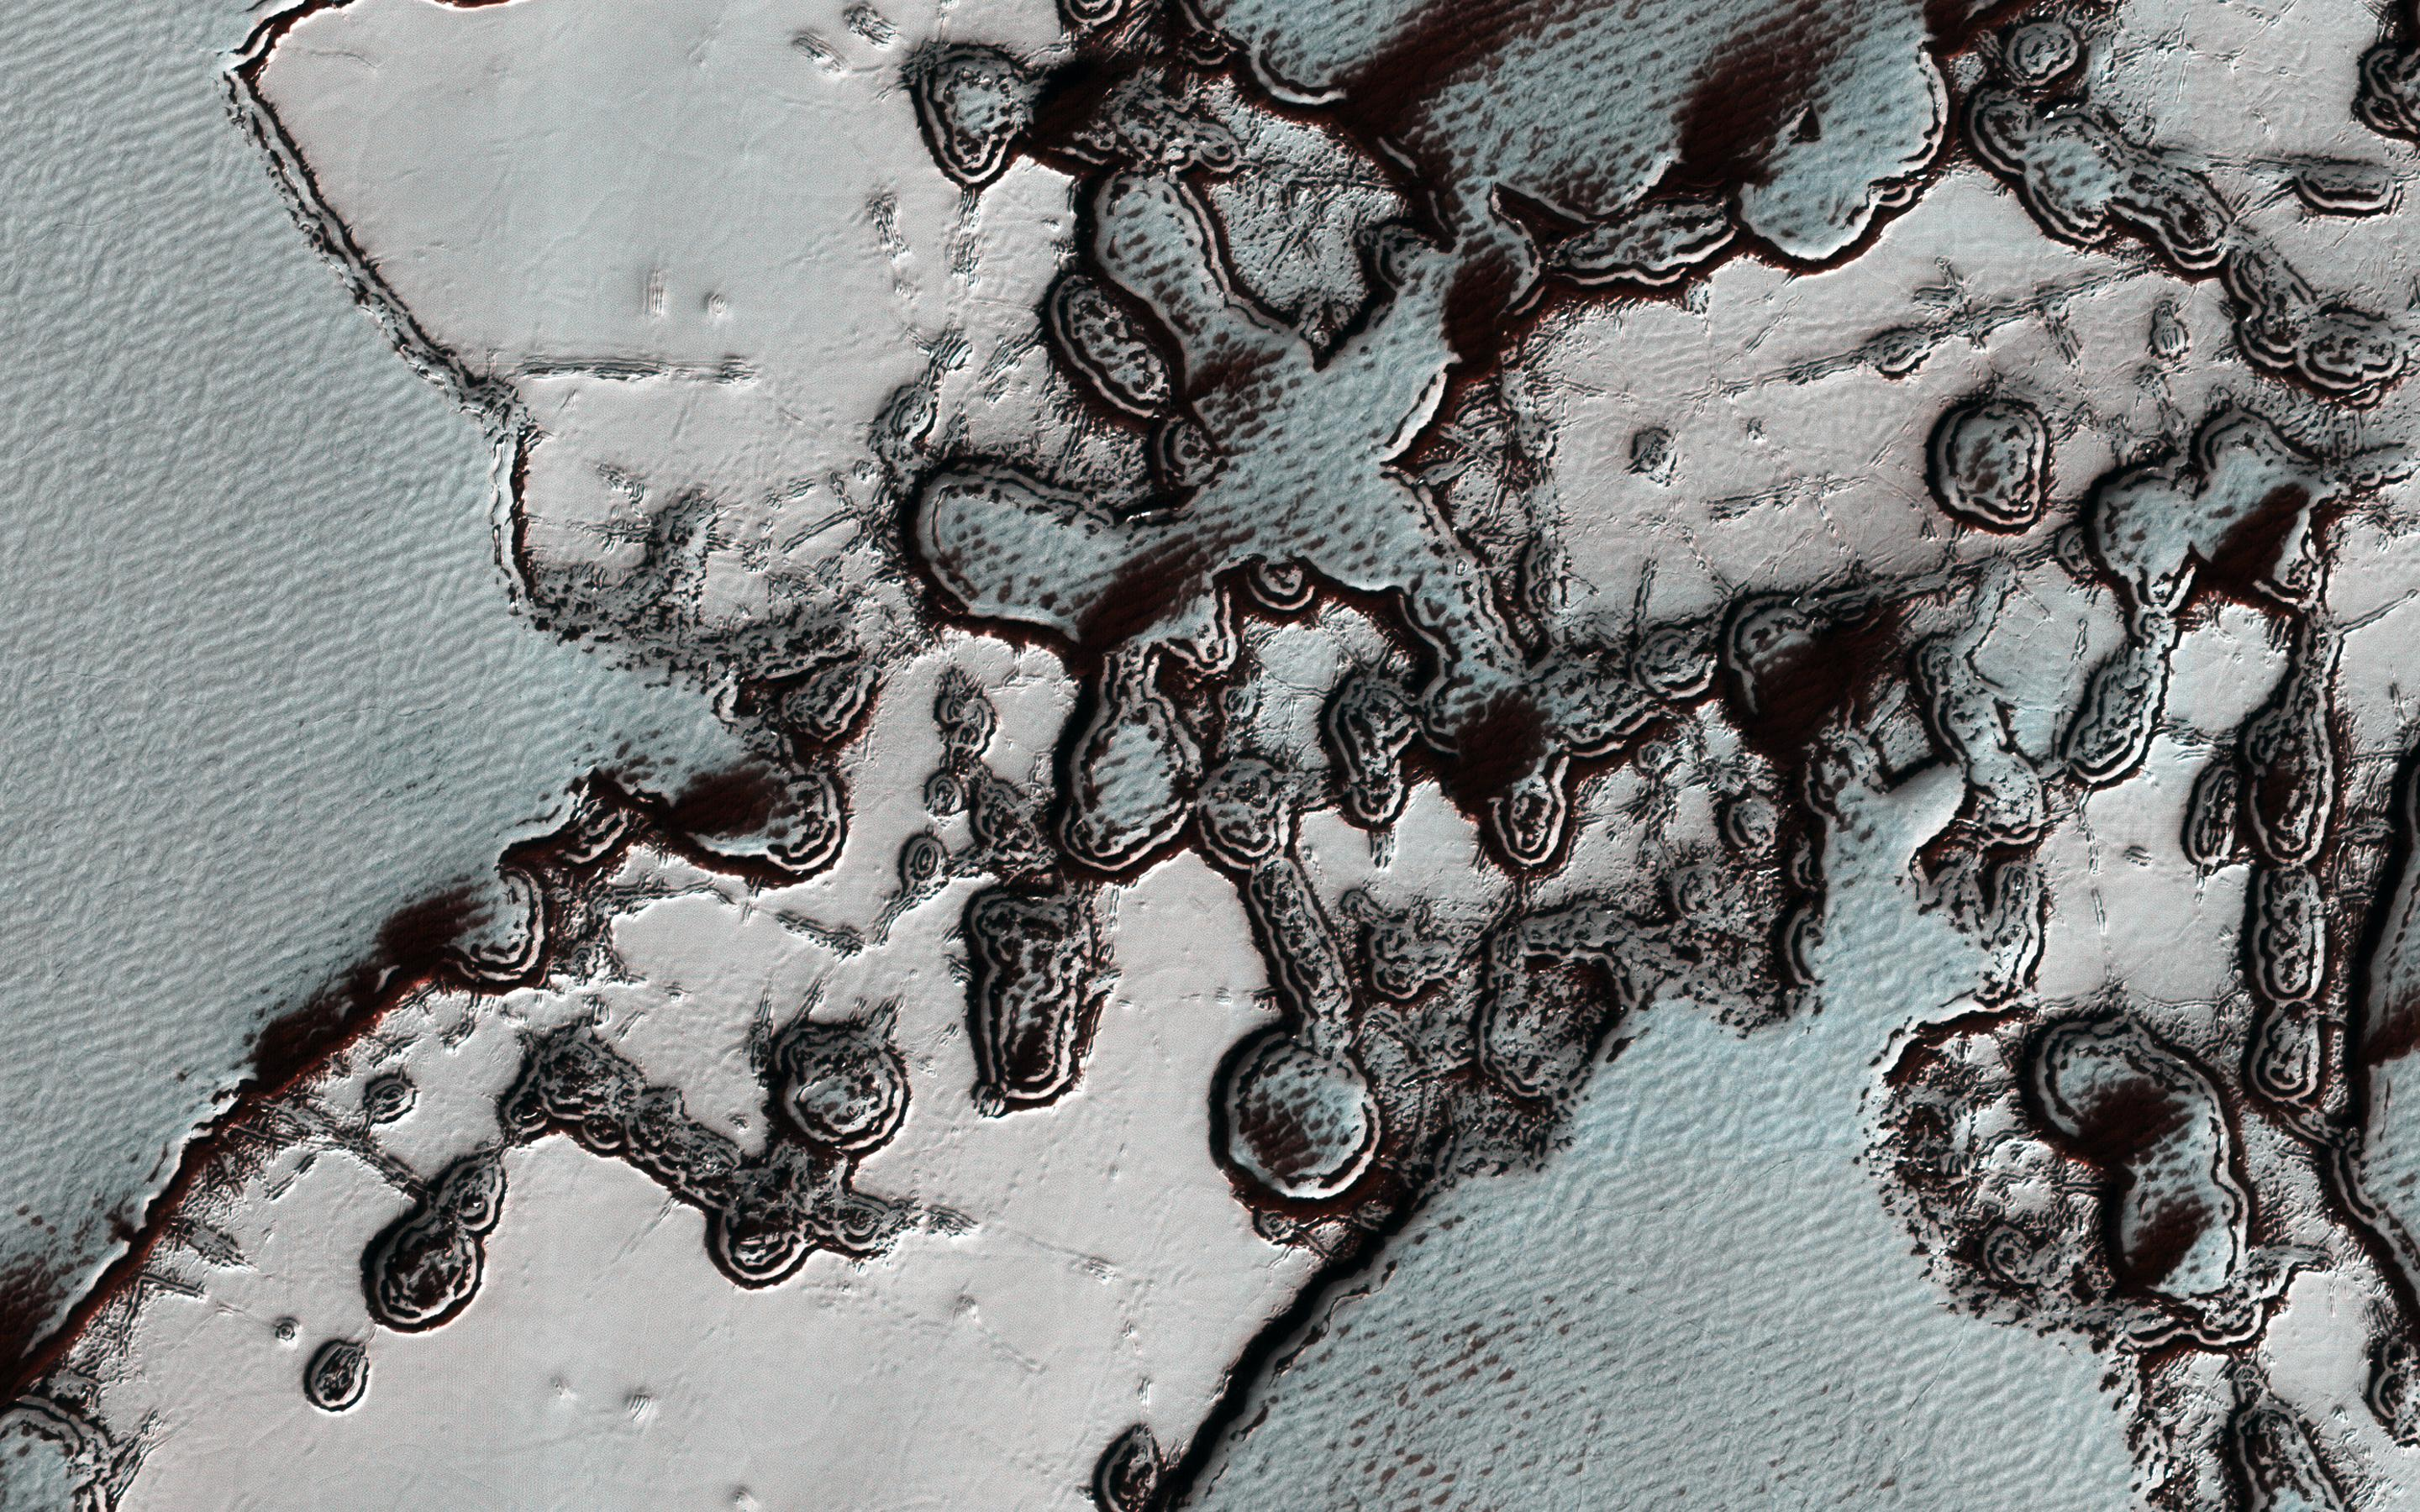 This image acquired on January 19, 2019 by NASAs Mars Reconnaissance Orbiter, shows the rapid changes in the south polar residual cap of carbon dioxide ice.